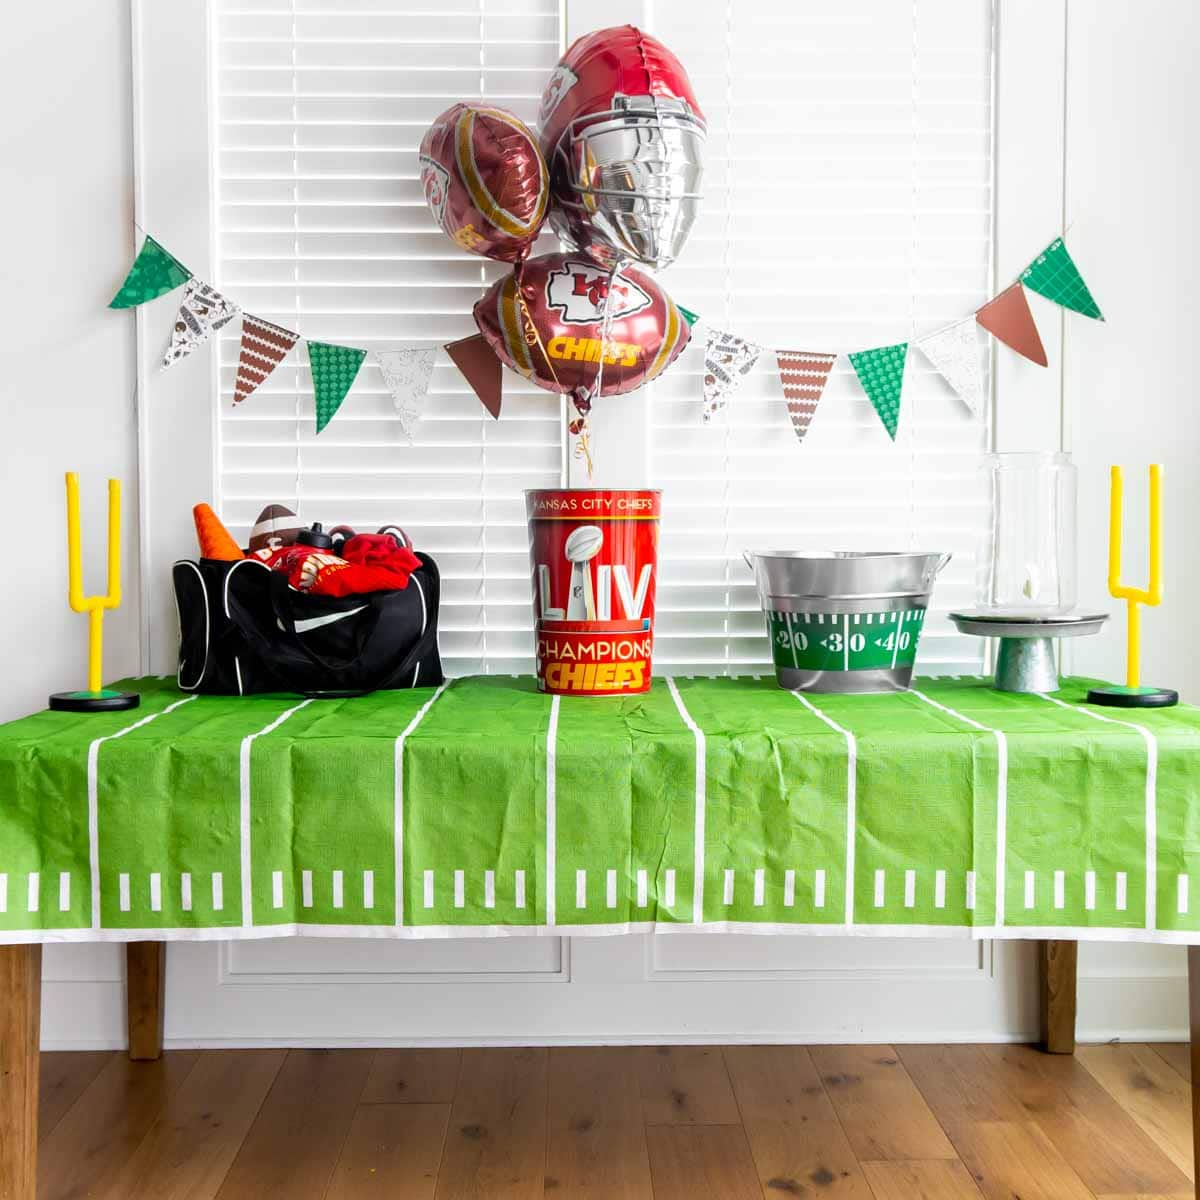 Football party table with large items on it